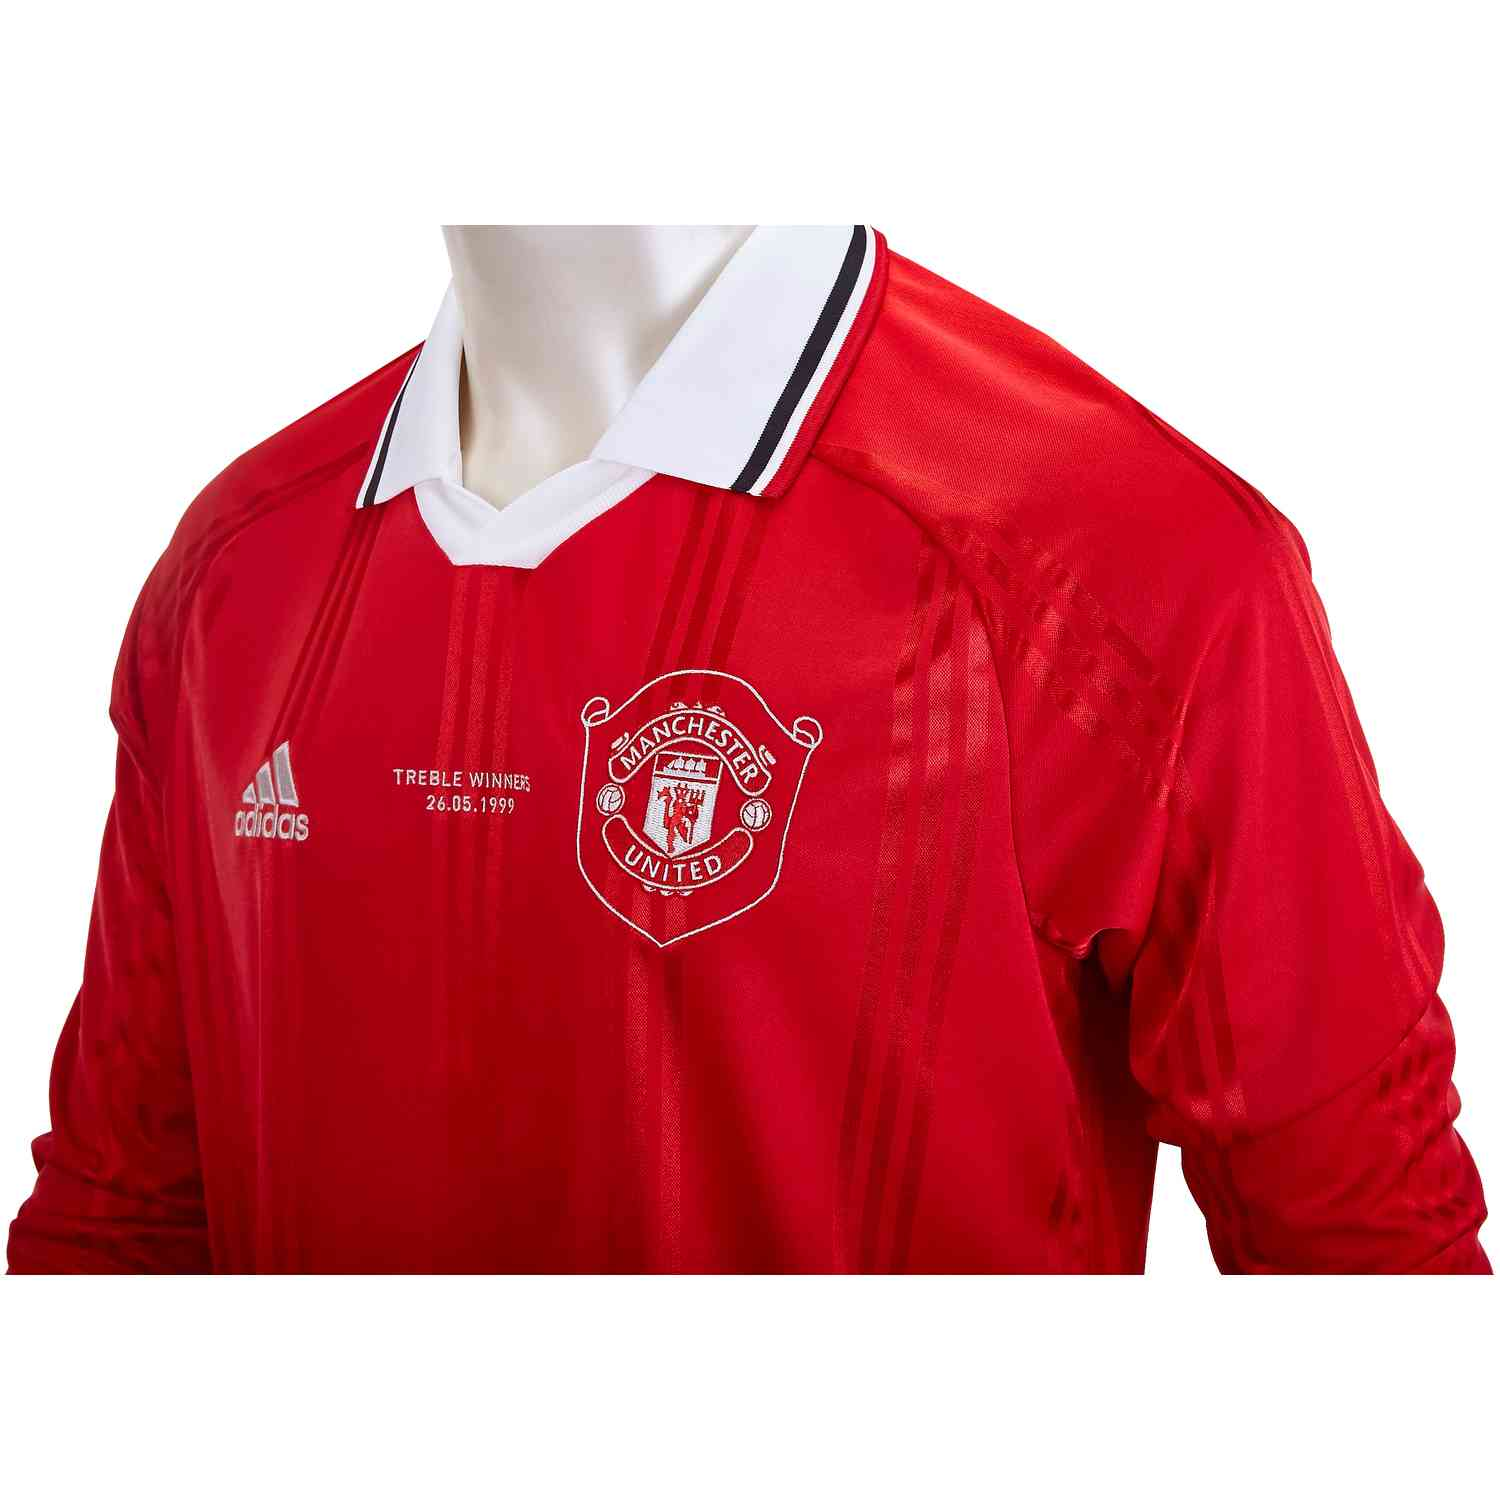 quality design 525d2 51487 adidas Manchester United L/S Retro Jersey - Real Red - SoccerPro